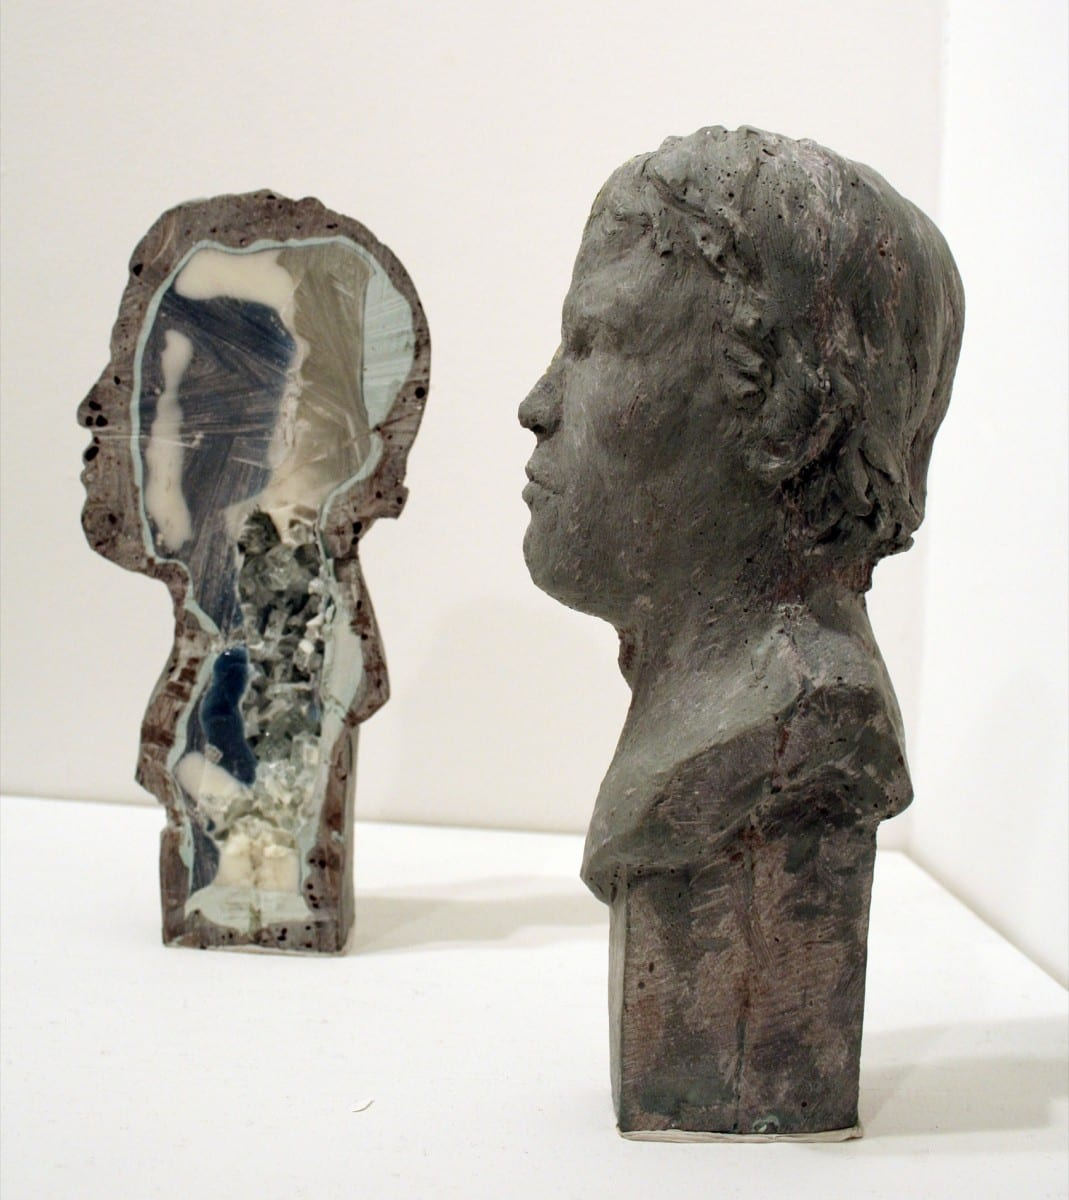 "Norm Paris, Geode (Arnold), Forton MG, metal powder, pigment, resin, glass, 9"" x 4"" x 5"", 2011"